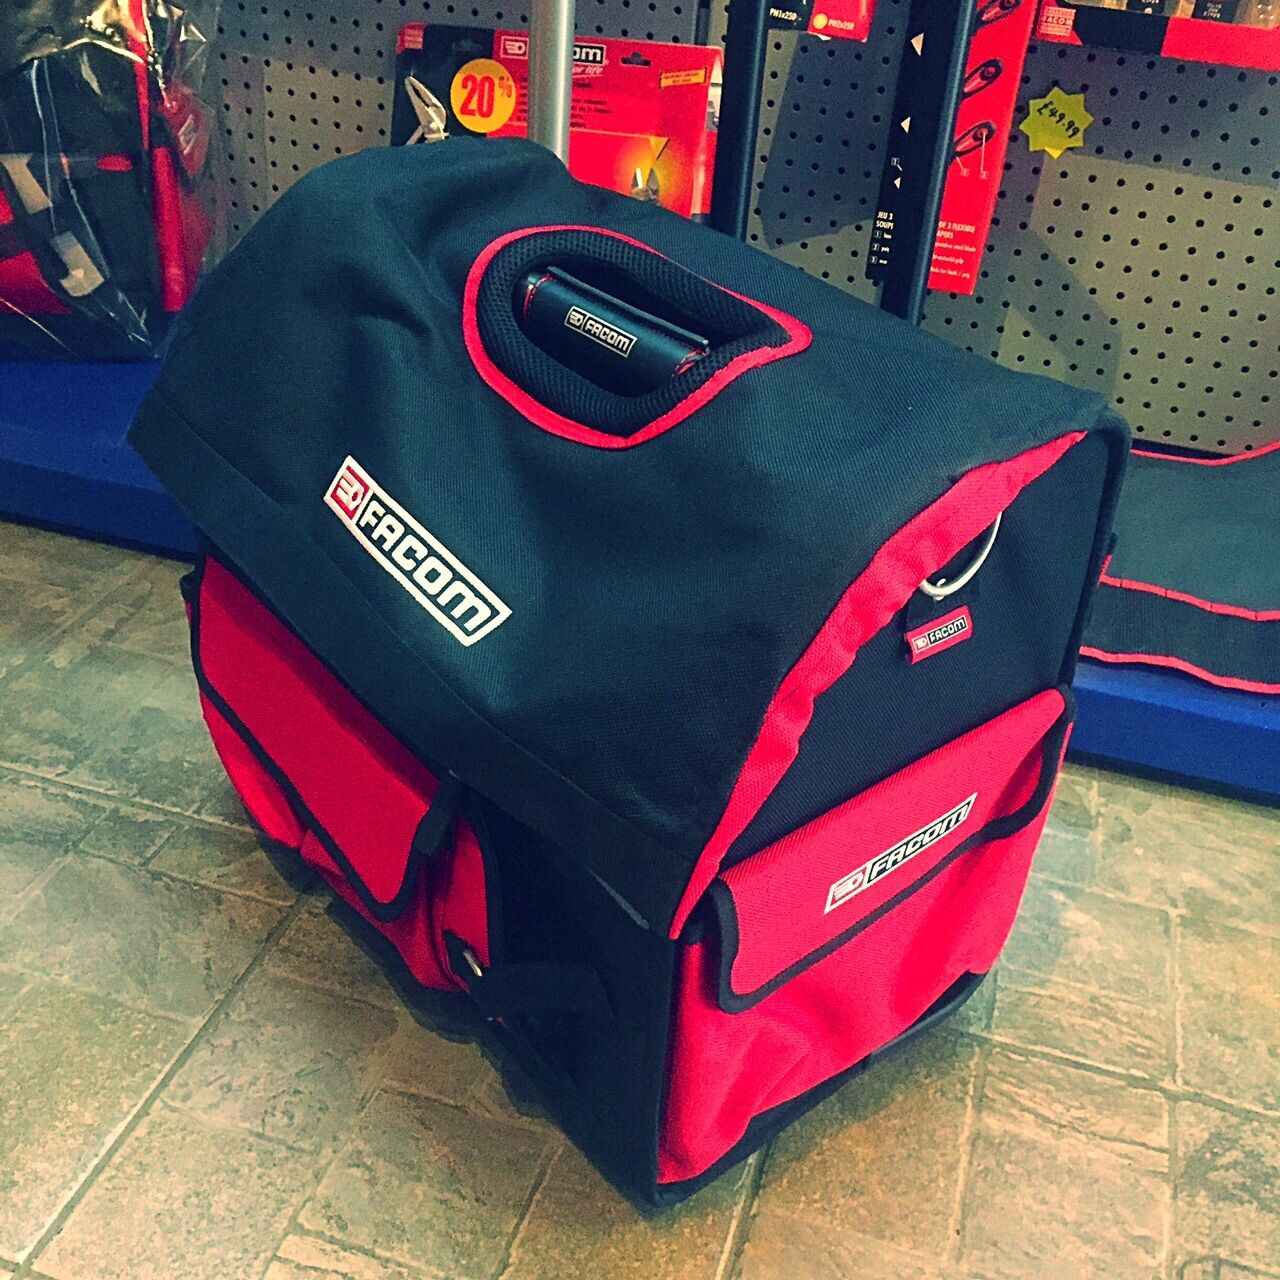 FACOM TOOLS TOTE BAG TROLLEY TOOLBOX MATERIAL MATERIAL MATERIAL IN ROT ON WHEELS eb001b